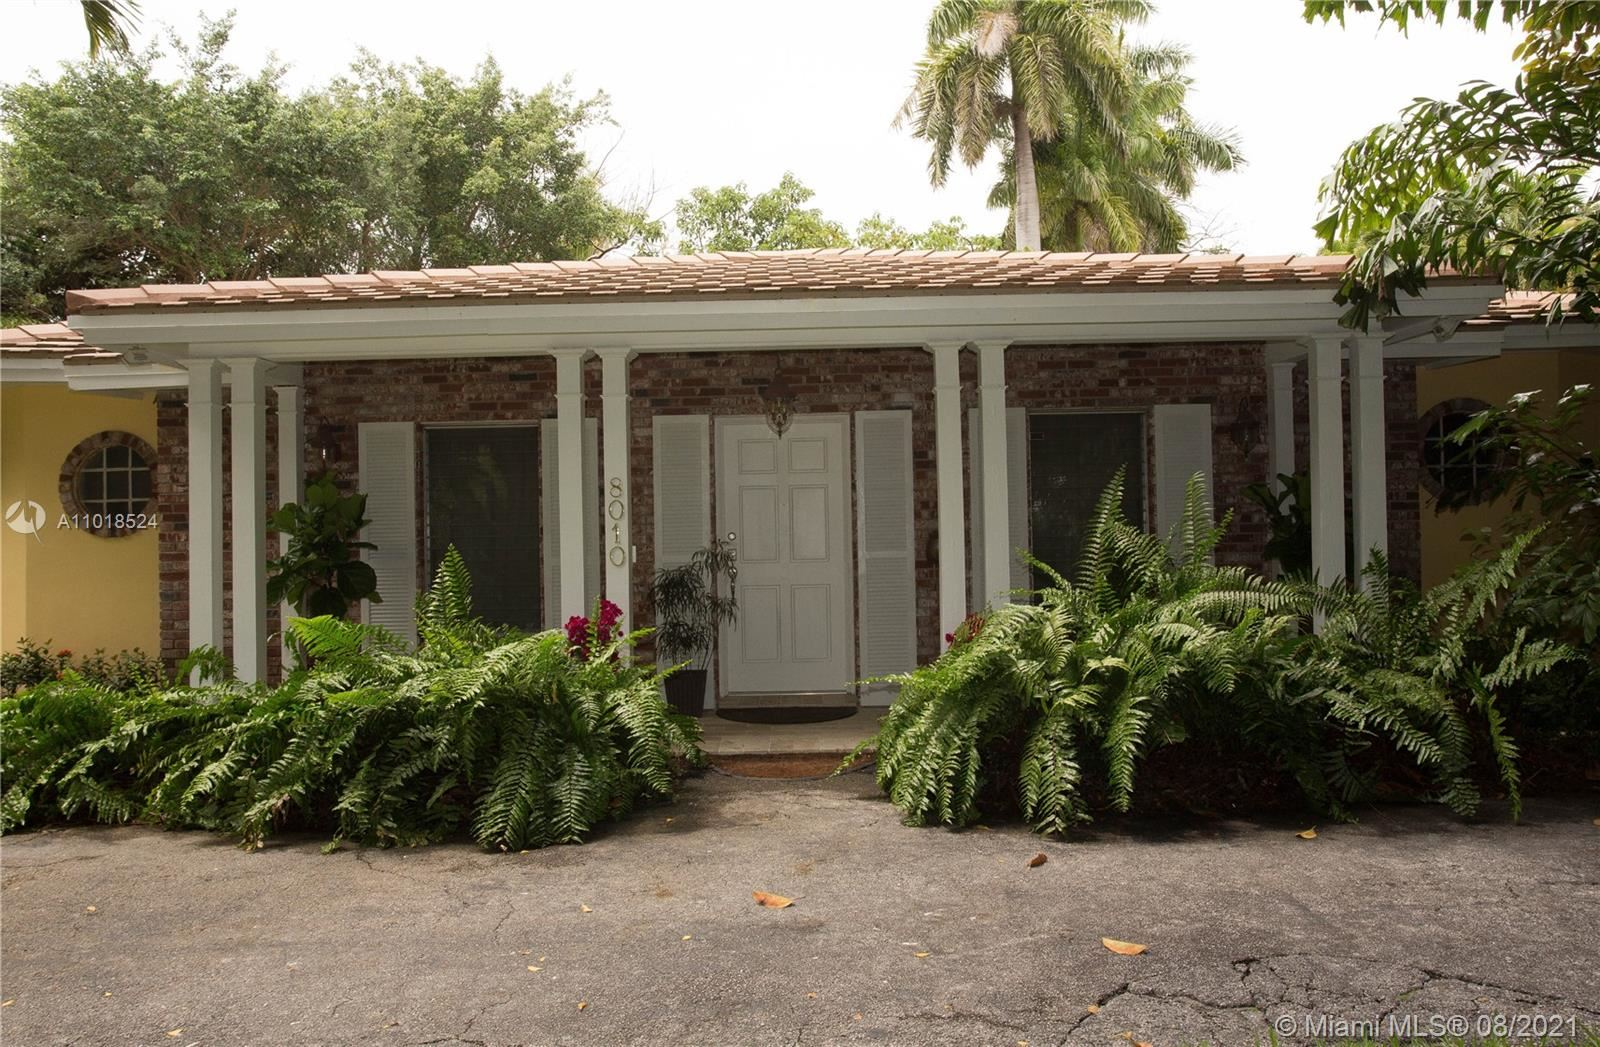 8010 Old Cutler Rd, Coral Gables, FL 33143 - #: A11018524